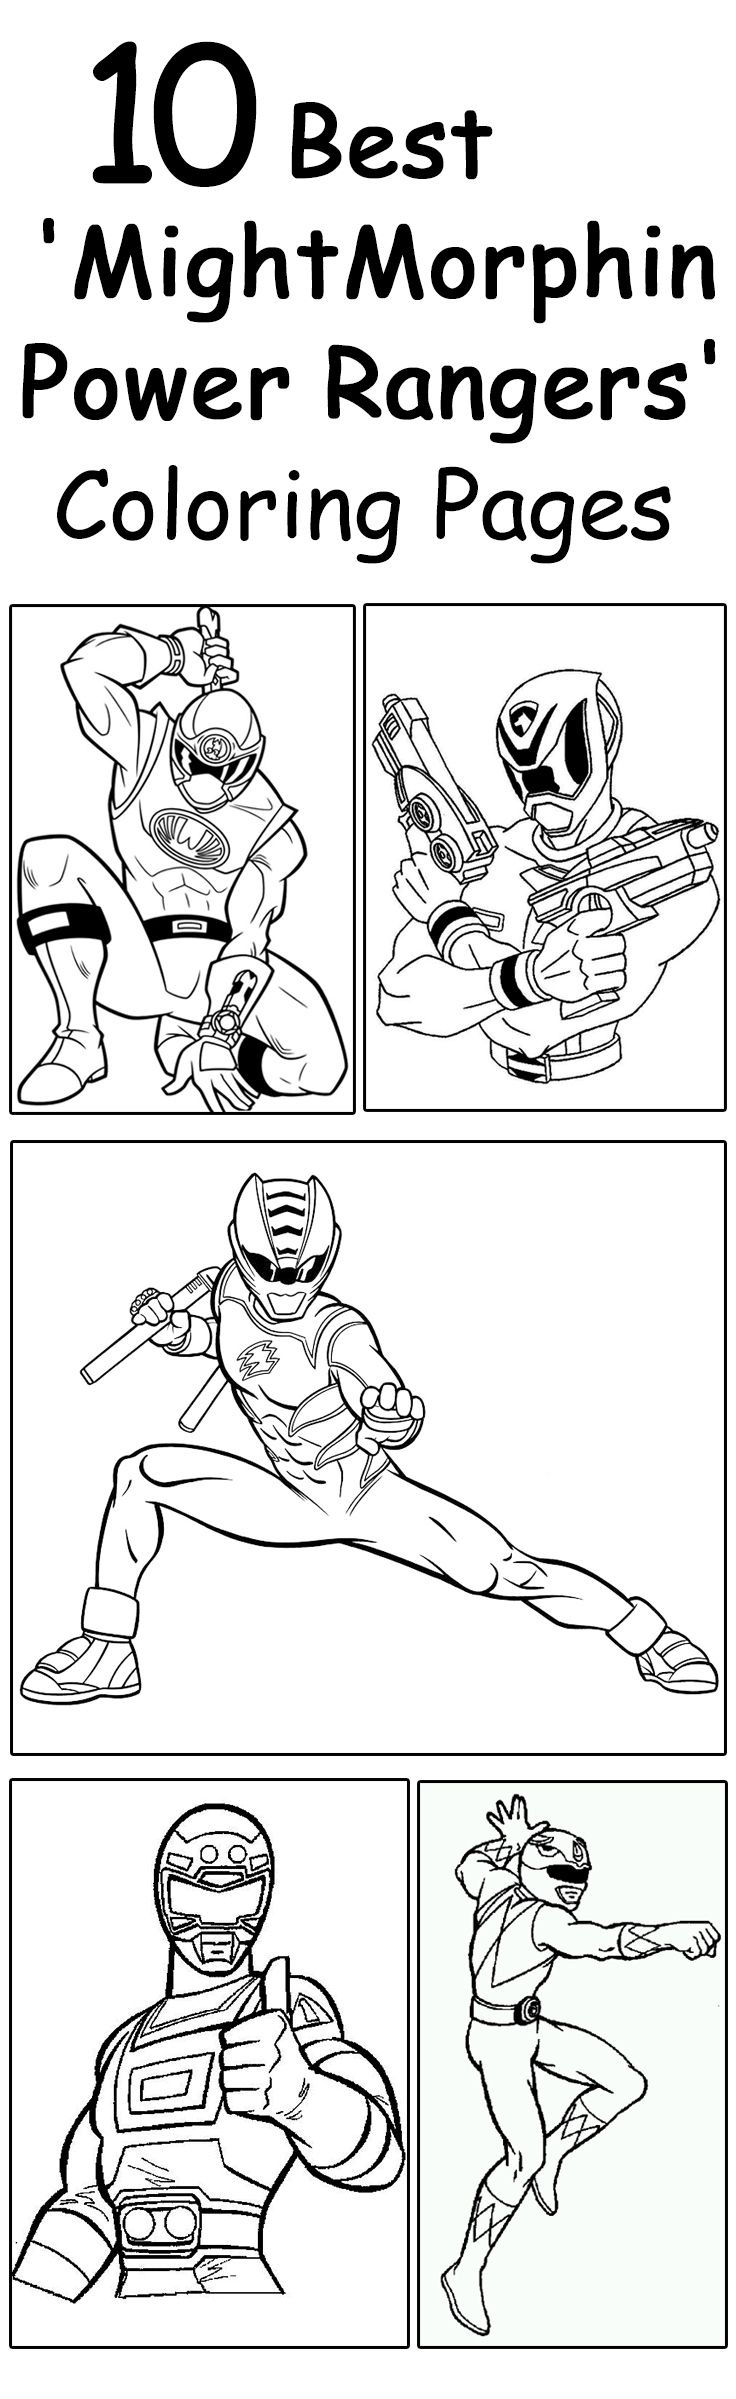 25 Best 'Mighty Morphin Power Rangers' Coloring Pages Your Toddler Will Love